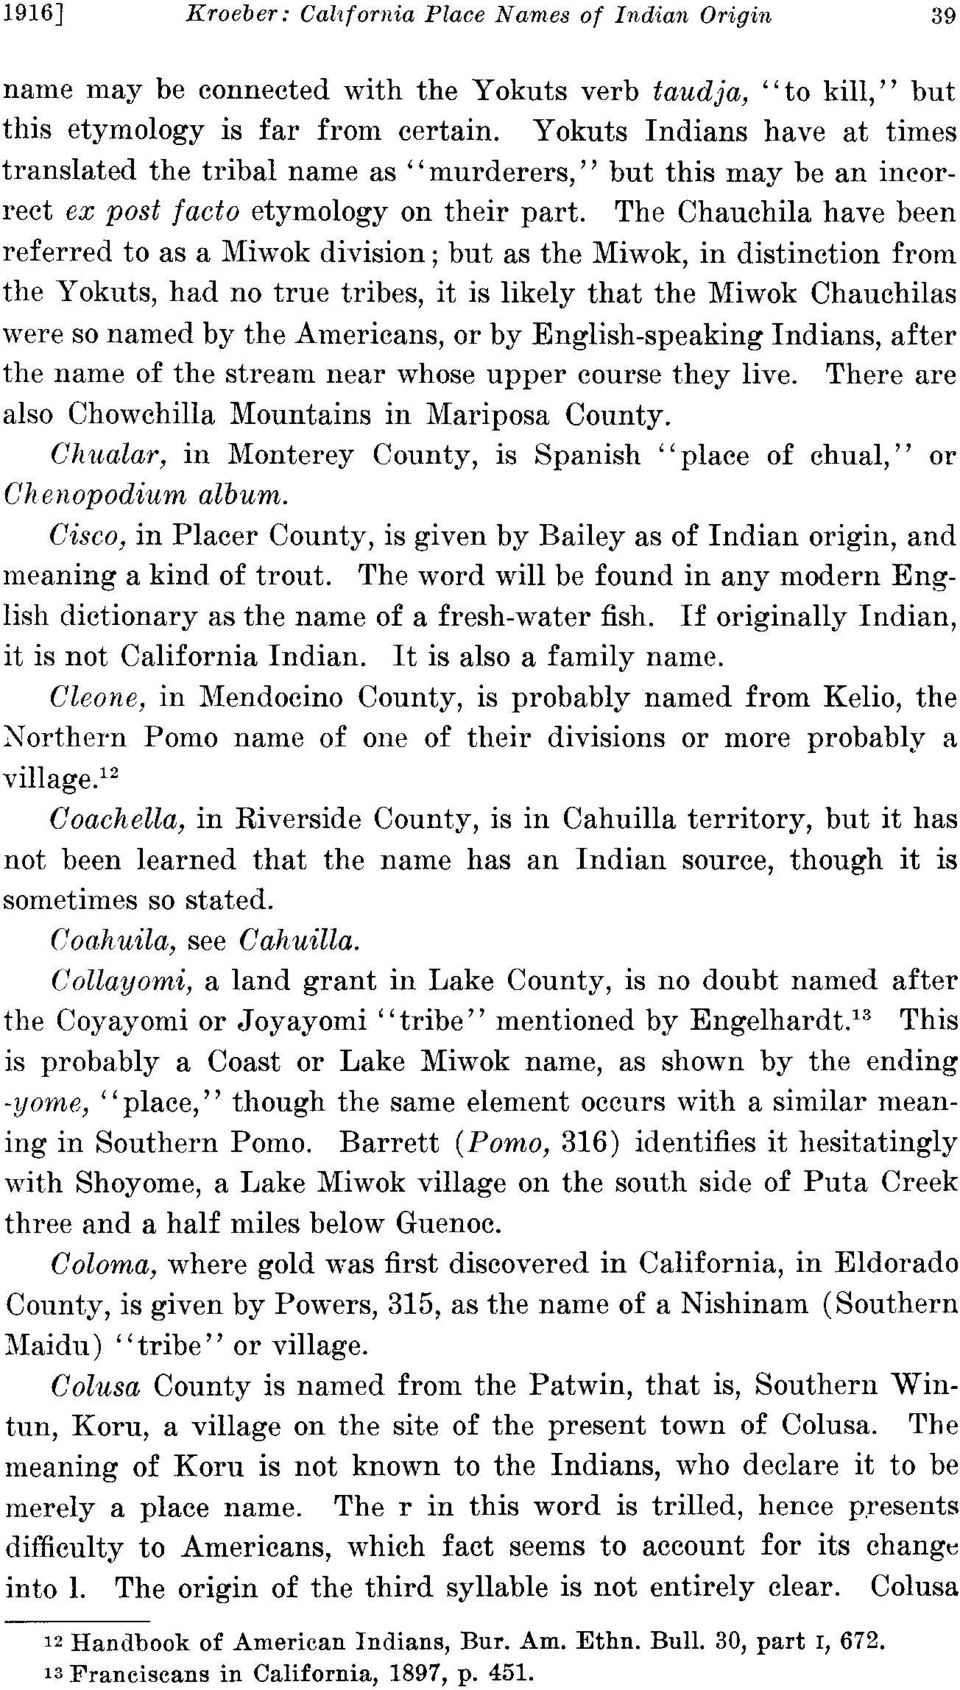 The Chauchila have been referred to as a Miwok division; but as the Miwok, in distinction from the Yokuts, had no true tribes, it is likely that the Miwok Chauchilas were so named by the Americans,